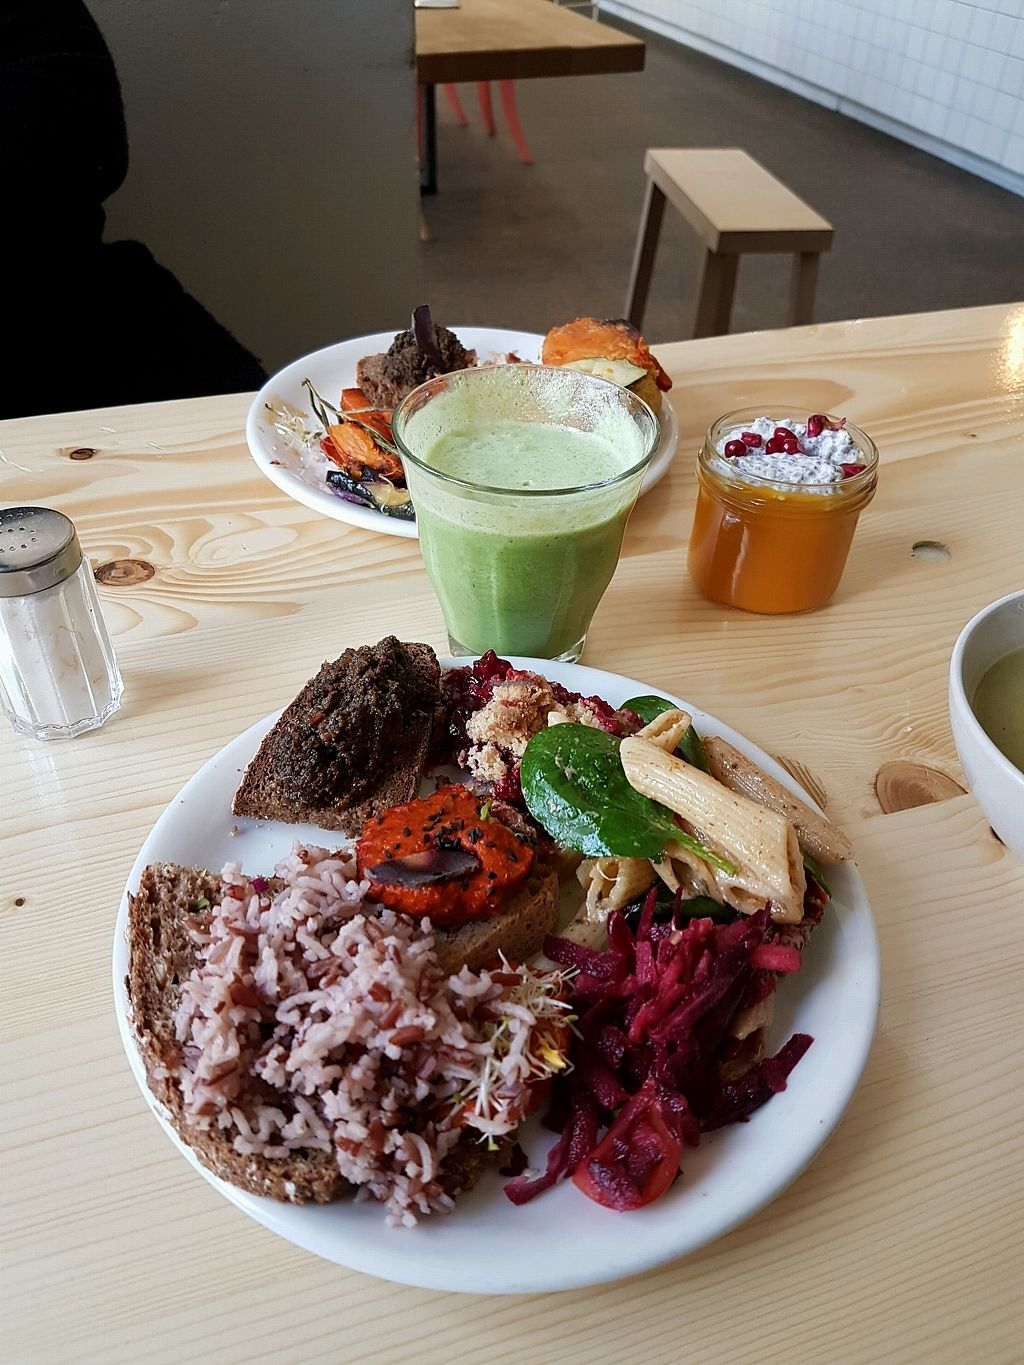 """Photo of Manafood  by <a href=""""/members/profile/841michael"""">841michael</a> <br/>Sunday Brunch <br/> April 2, 2018  - <a href='/contact/abuse/image/102480/379953'>Report</a>"""